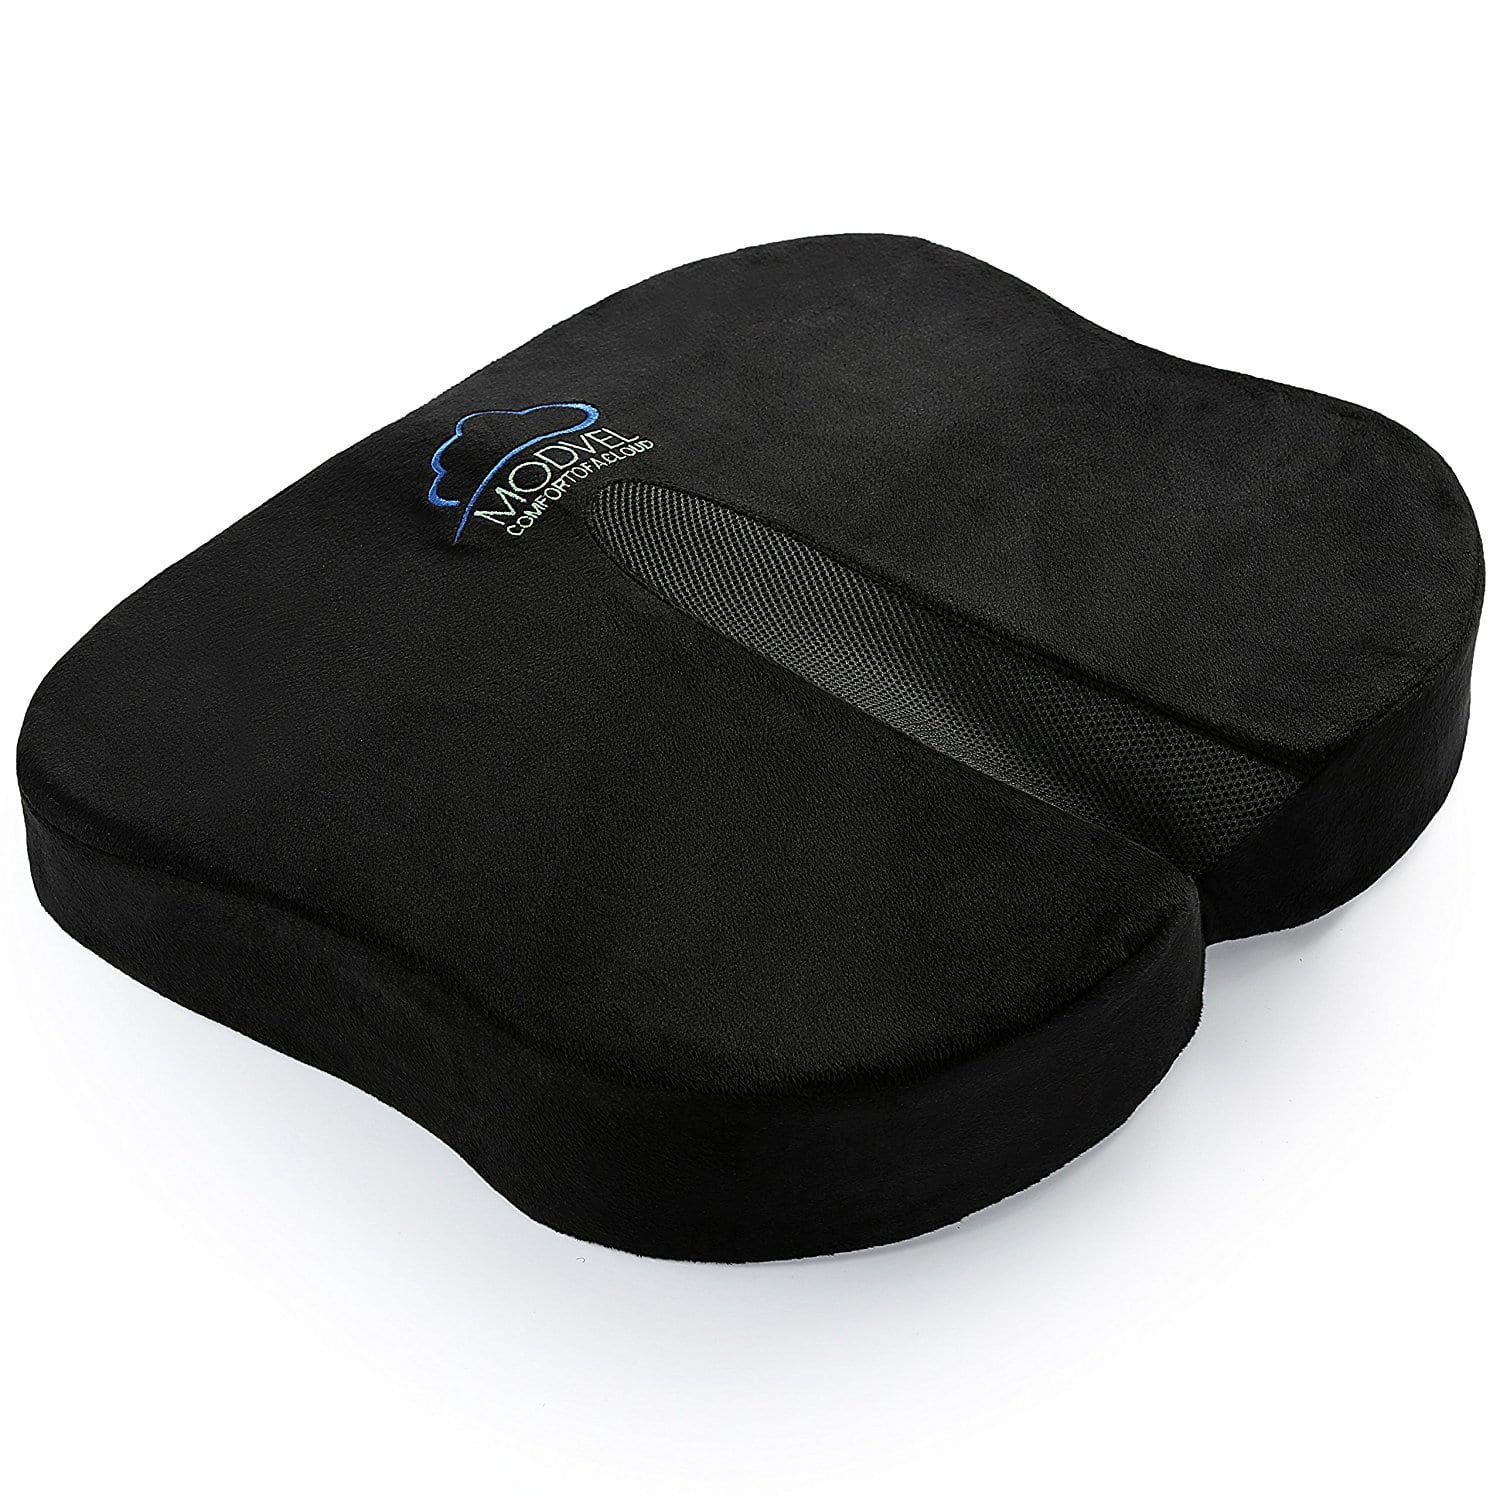 Modvel Memory Foam Seat Cushion For Back Pain, Tailbone, Coccyx & Sciatica Relief $10